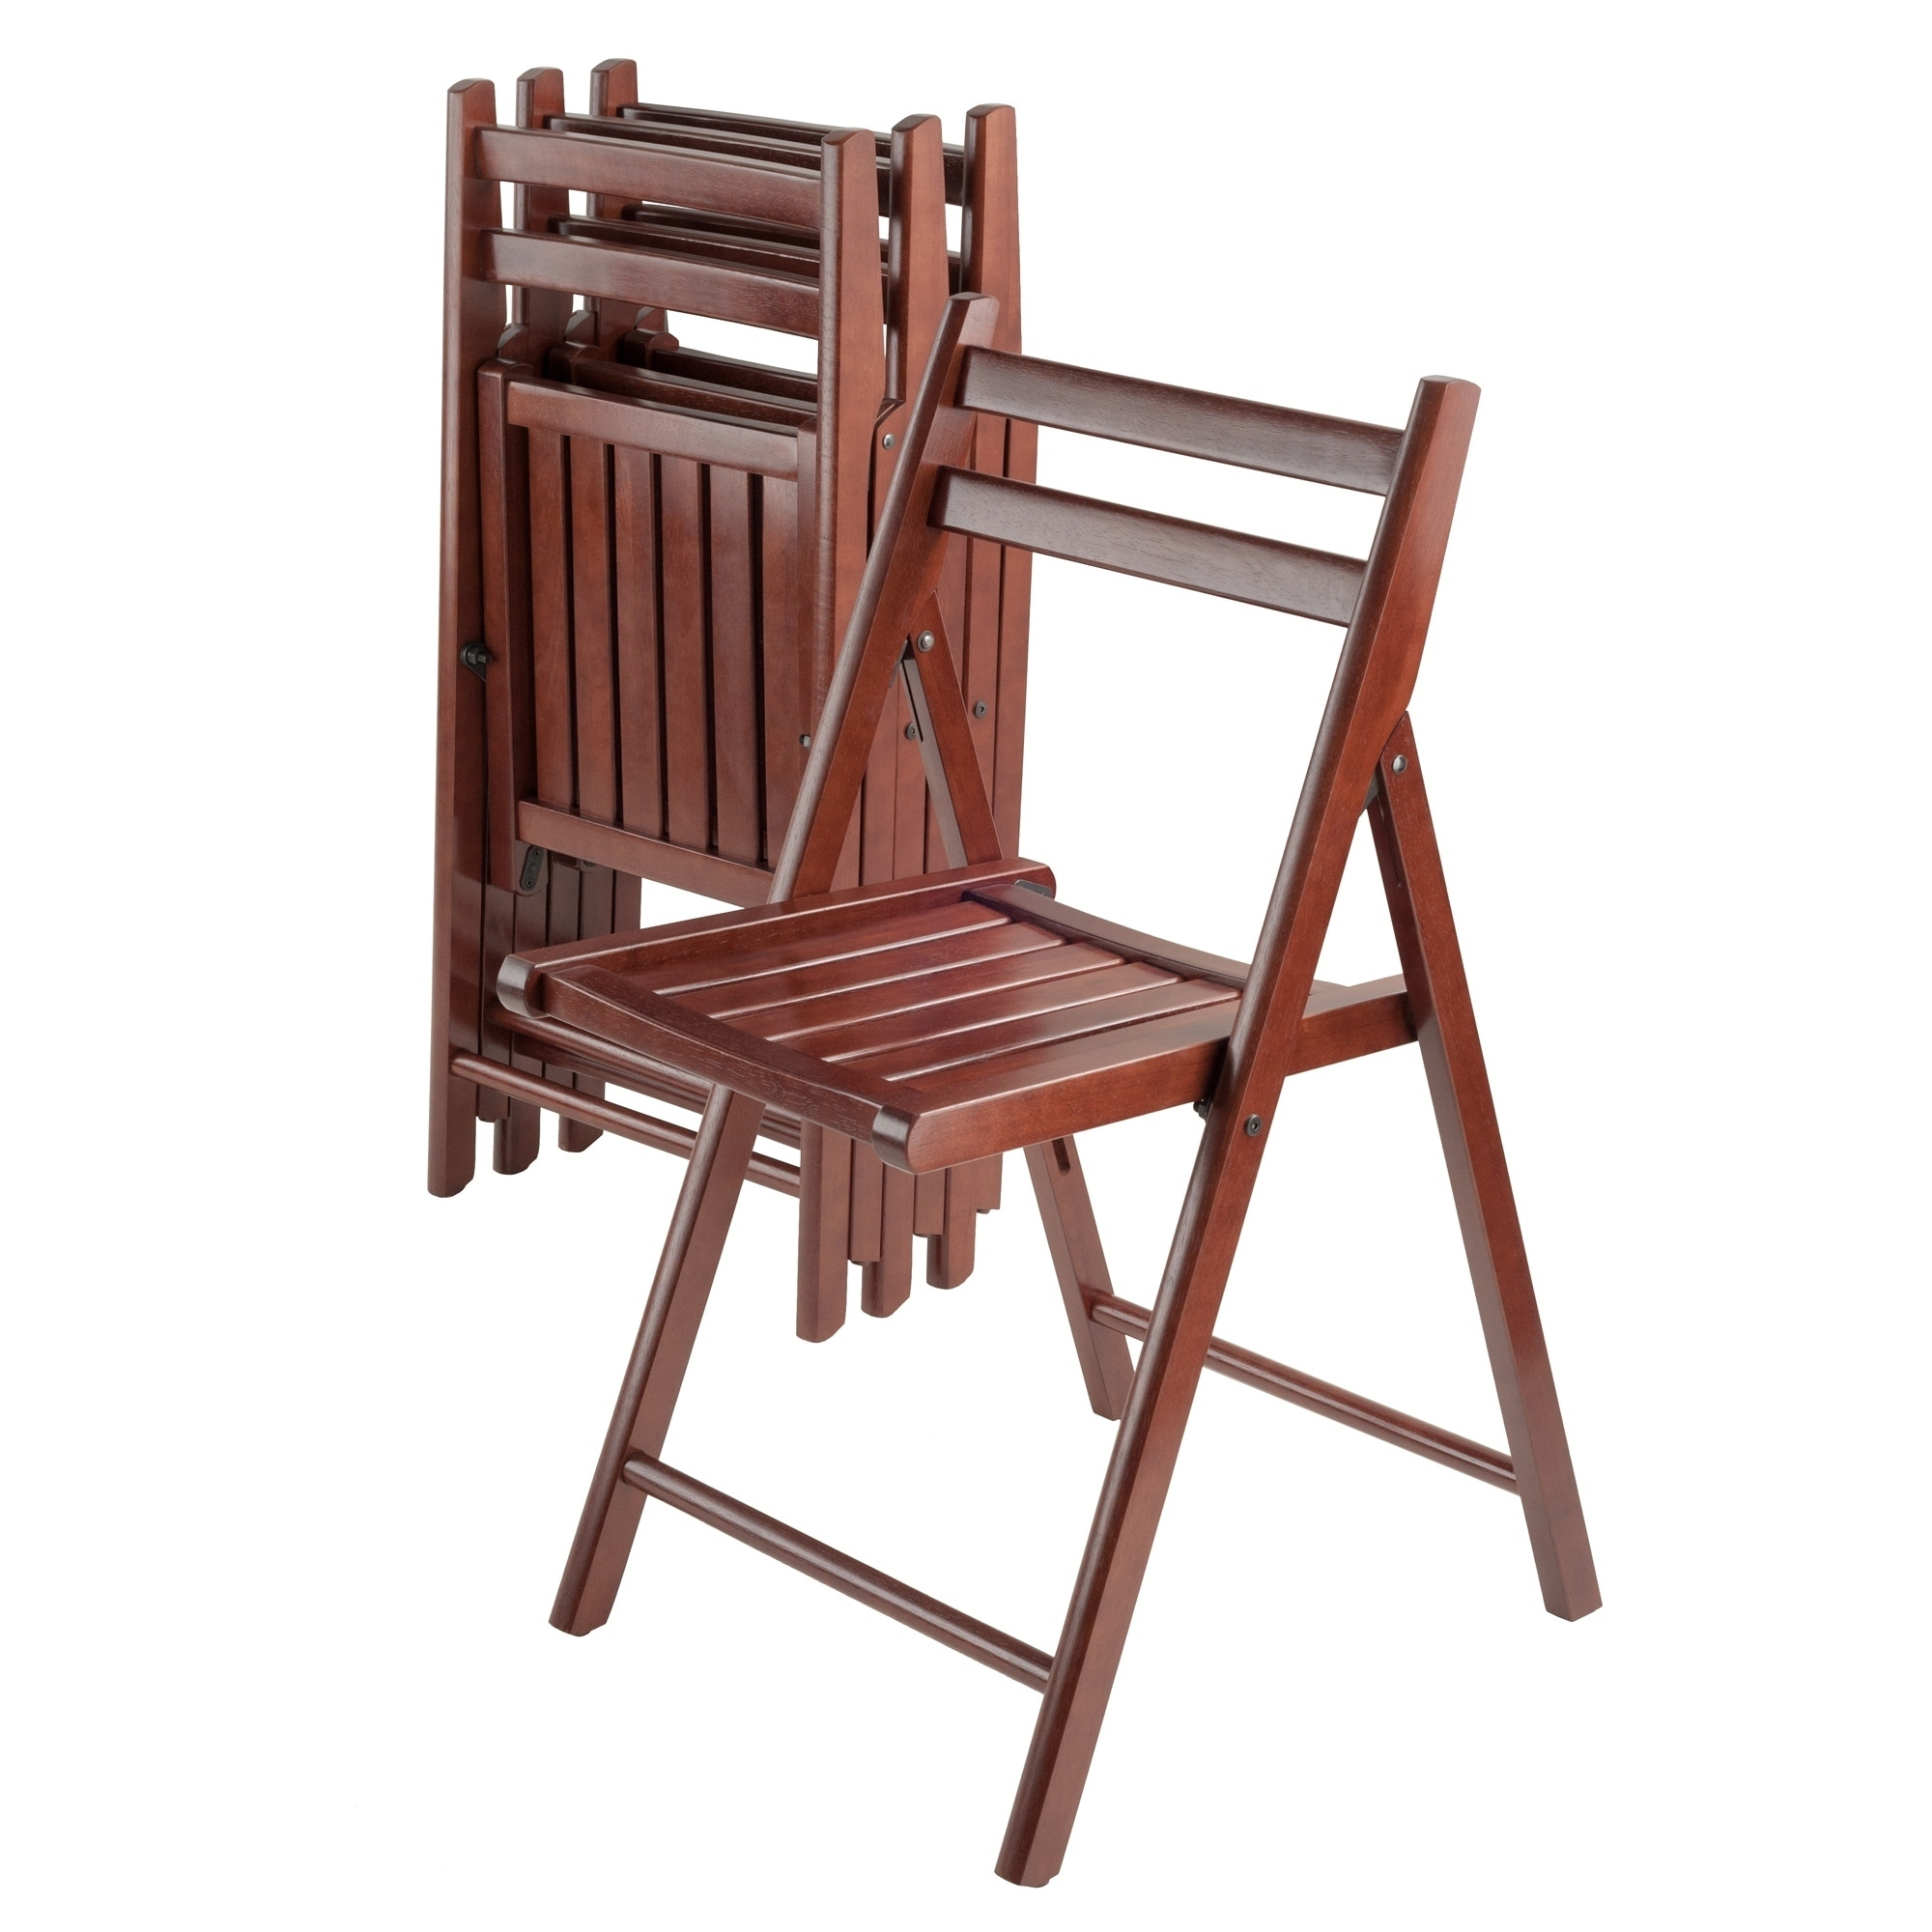 Schaukelbank Ikea Robin 4 Pc Folding Chair Set Walnut Brown Winsome Wood